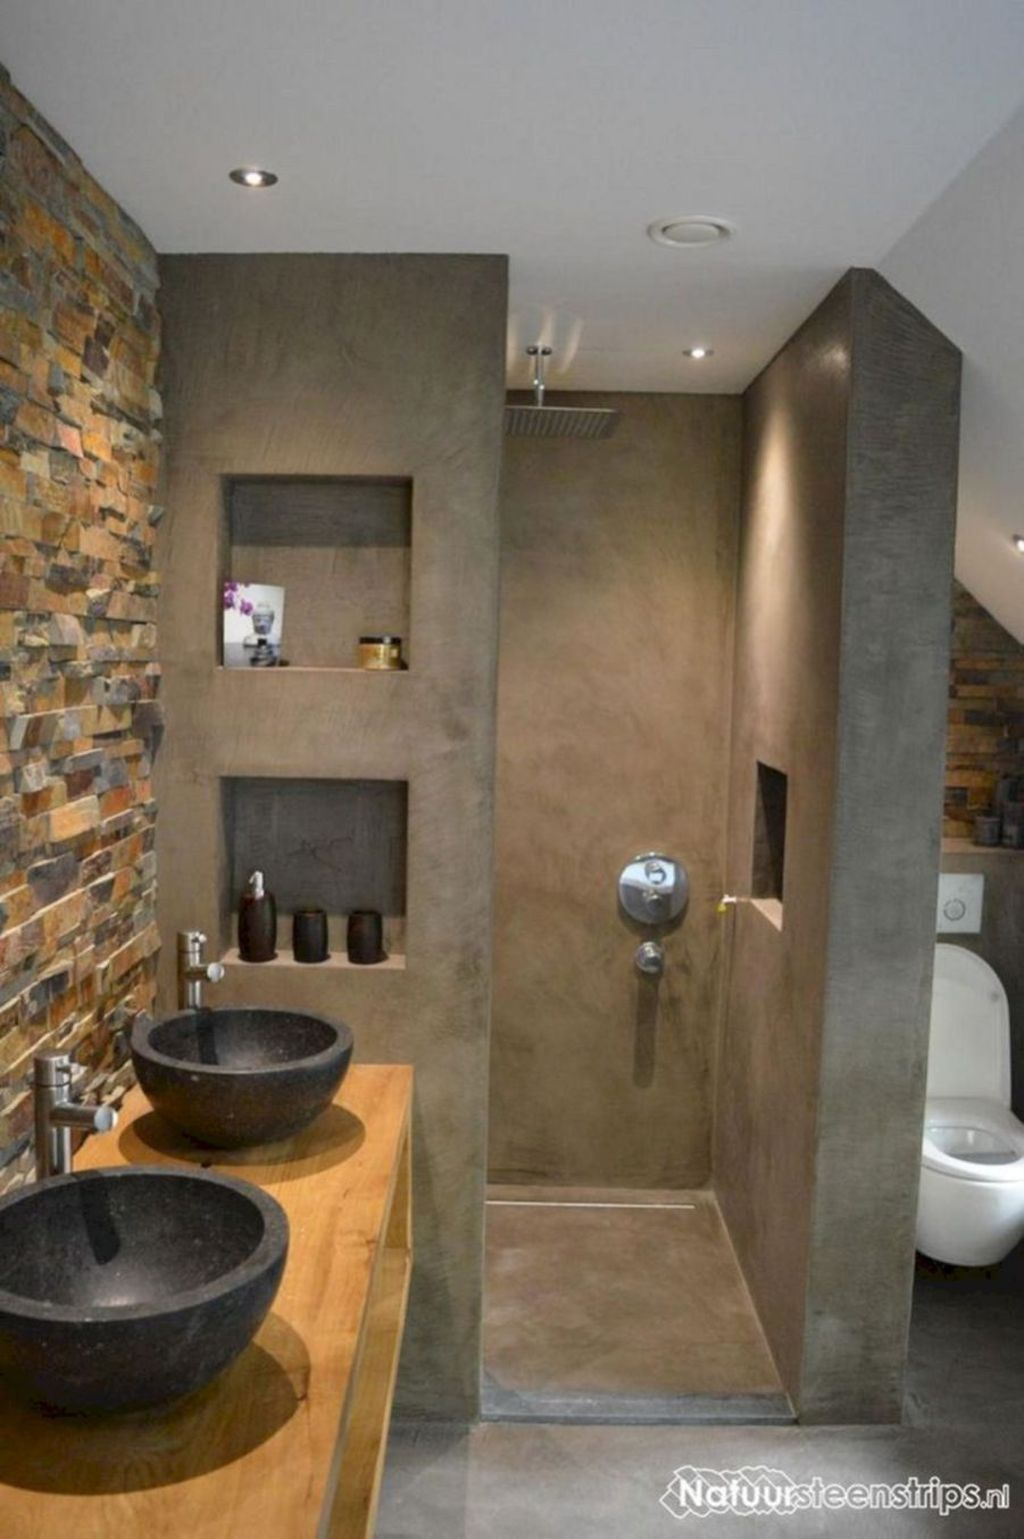 20 Amazing Bathroom Design Ideas For Small Space In 2020